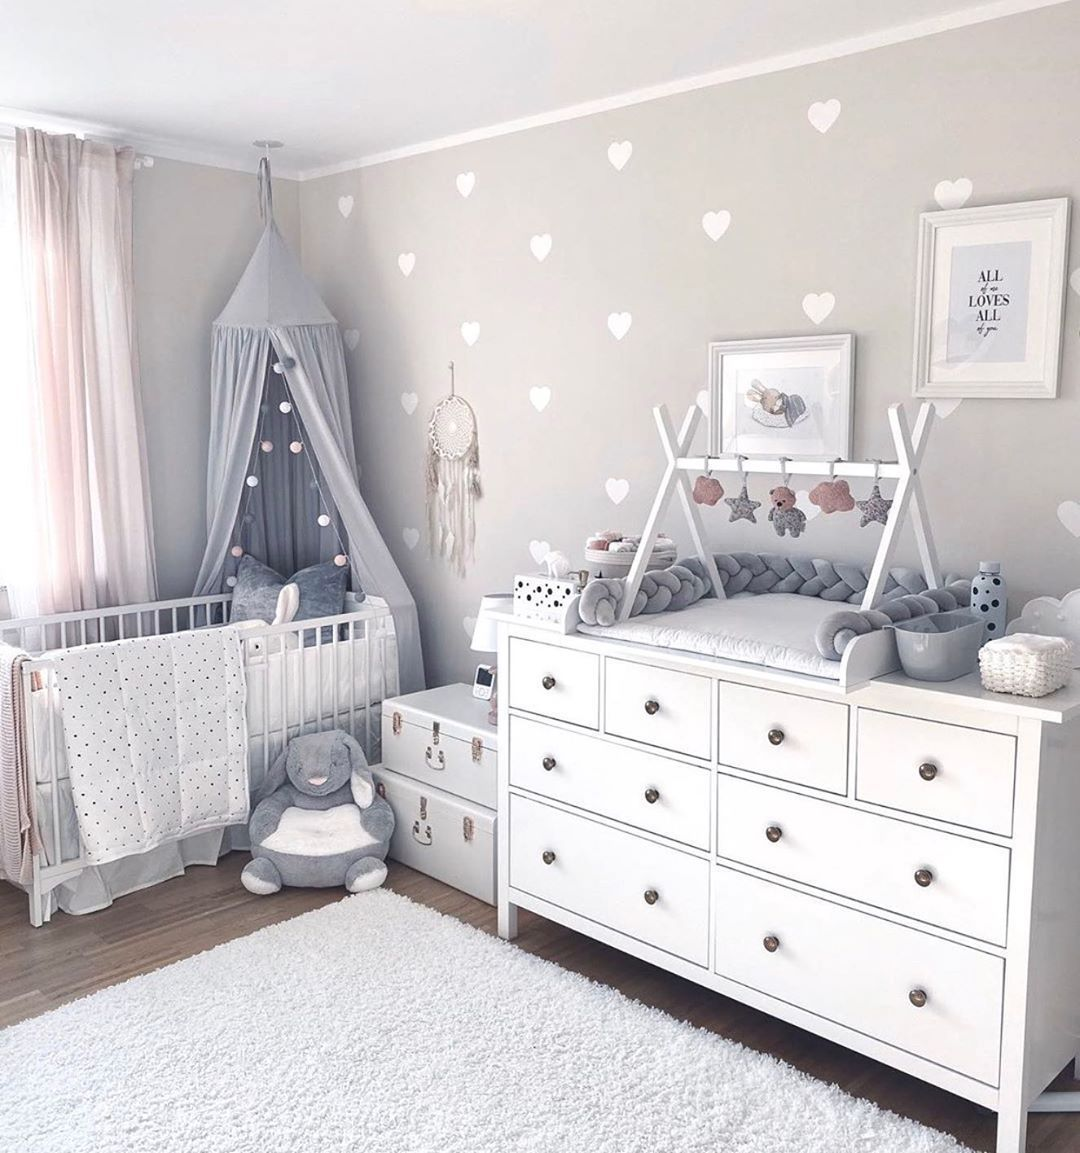 Fantasyroom On Instagram Quotsuch A Beautiful Nursery At J Beautiful Fantasyroom Instagram Nursery Quotsuch In 2020 Ikea Babyzimmer Kinderschlafzimmer Babyzimmer